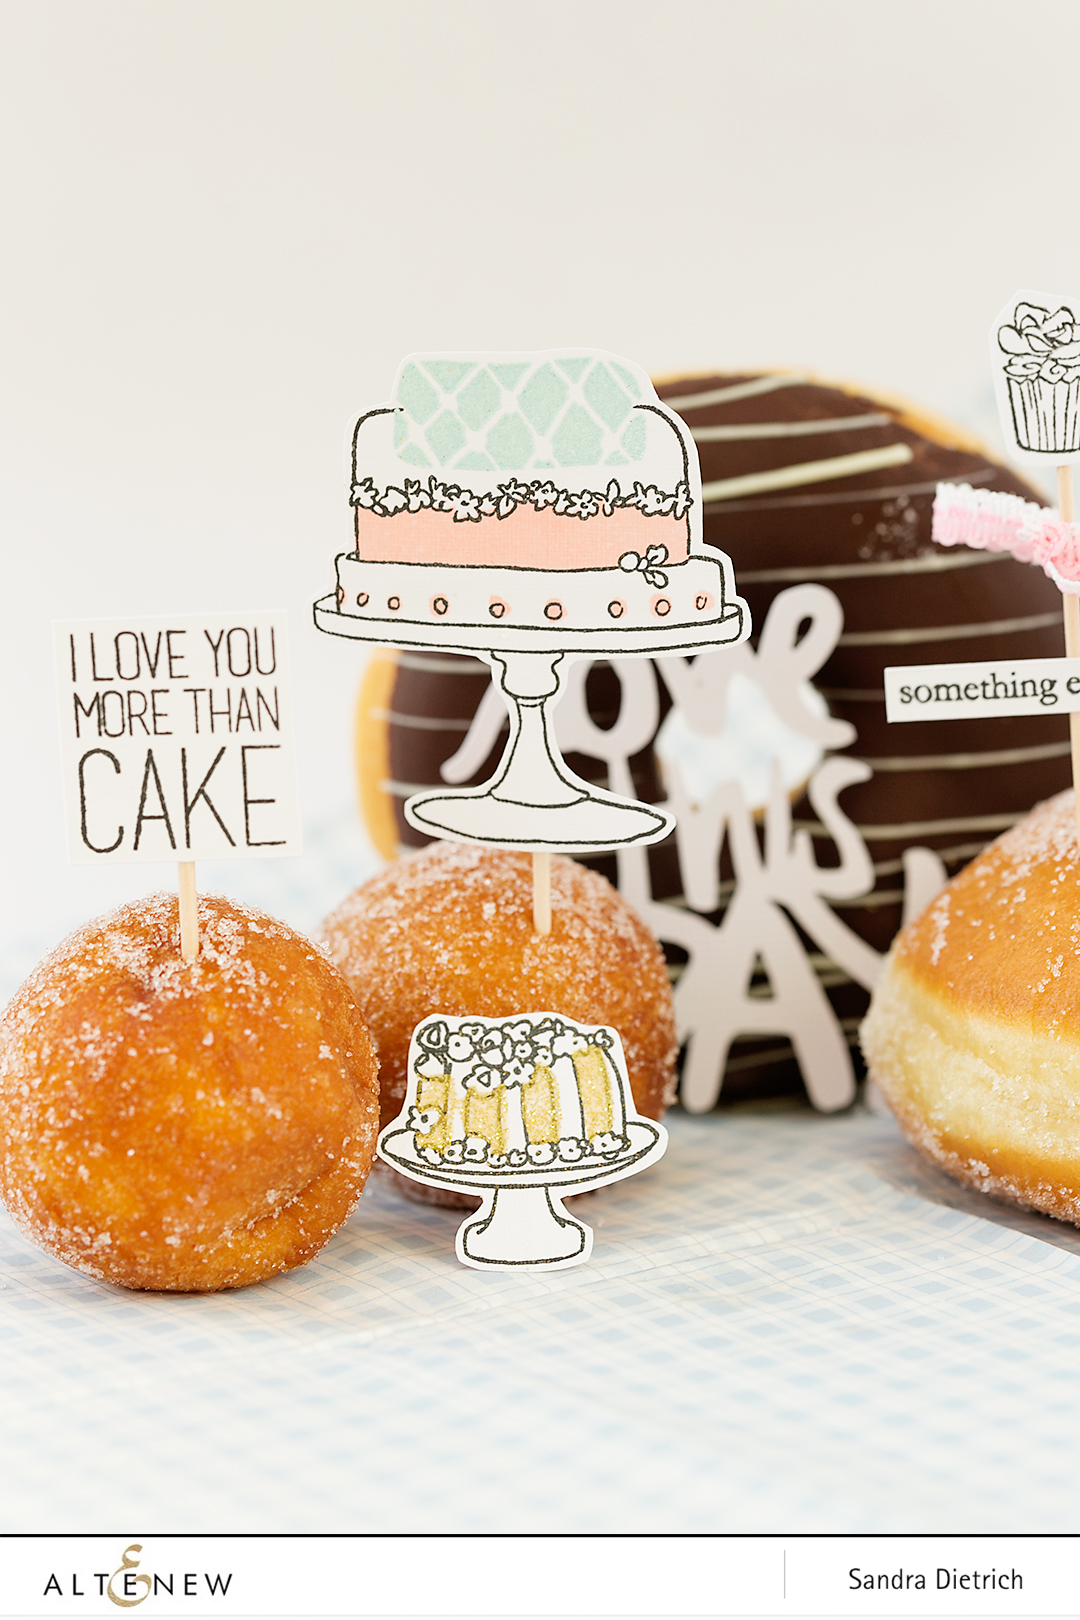 Pimp your sweets with Cake Love @SandraDietrich for @Altenew